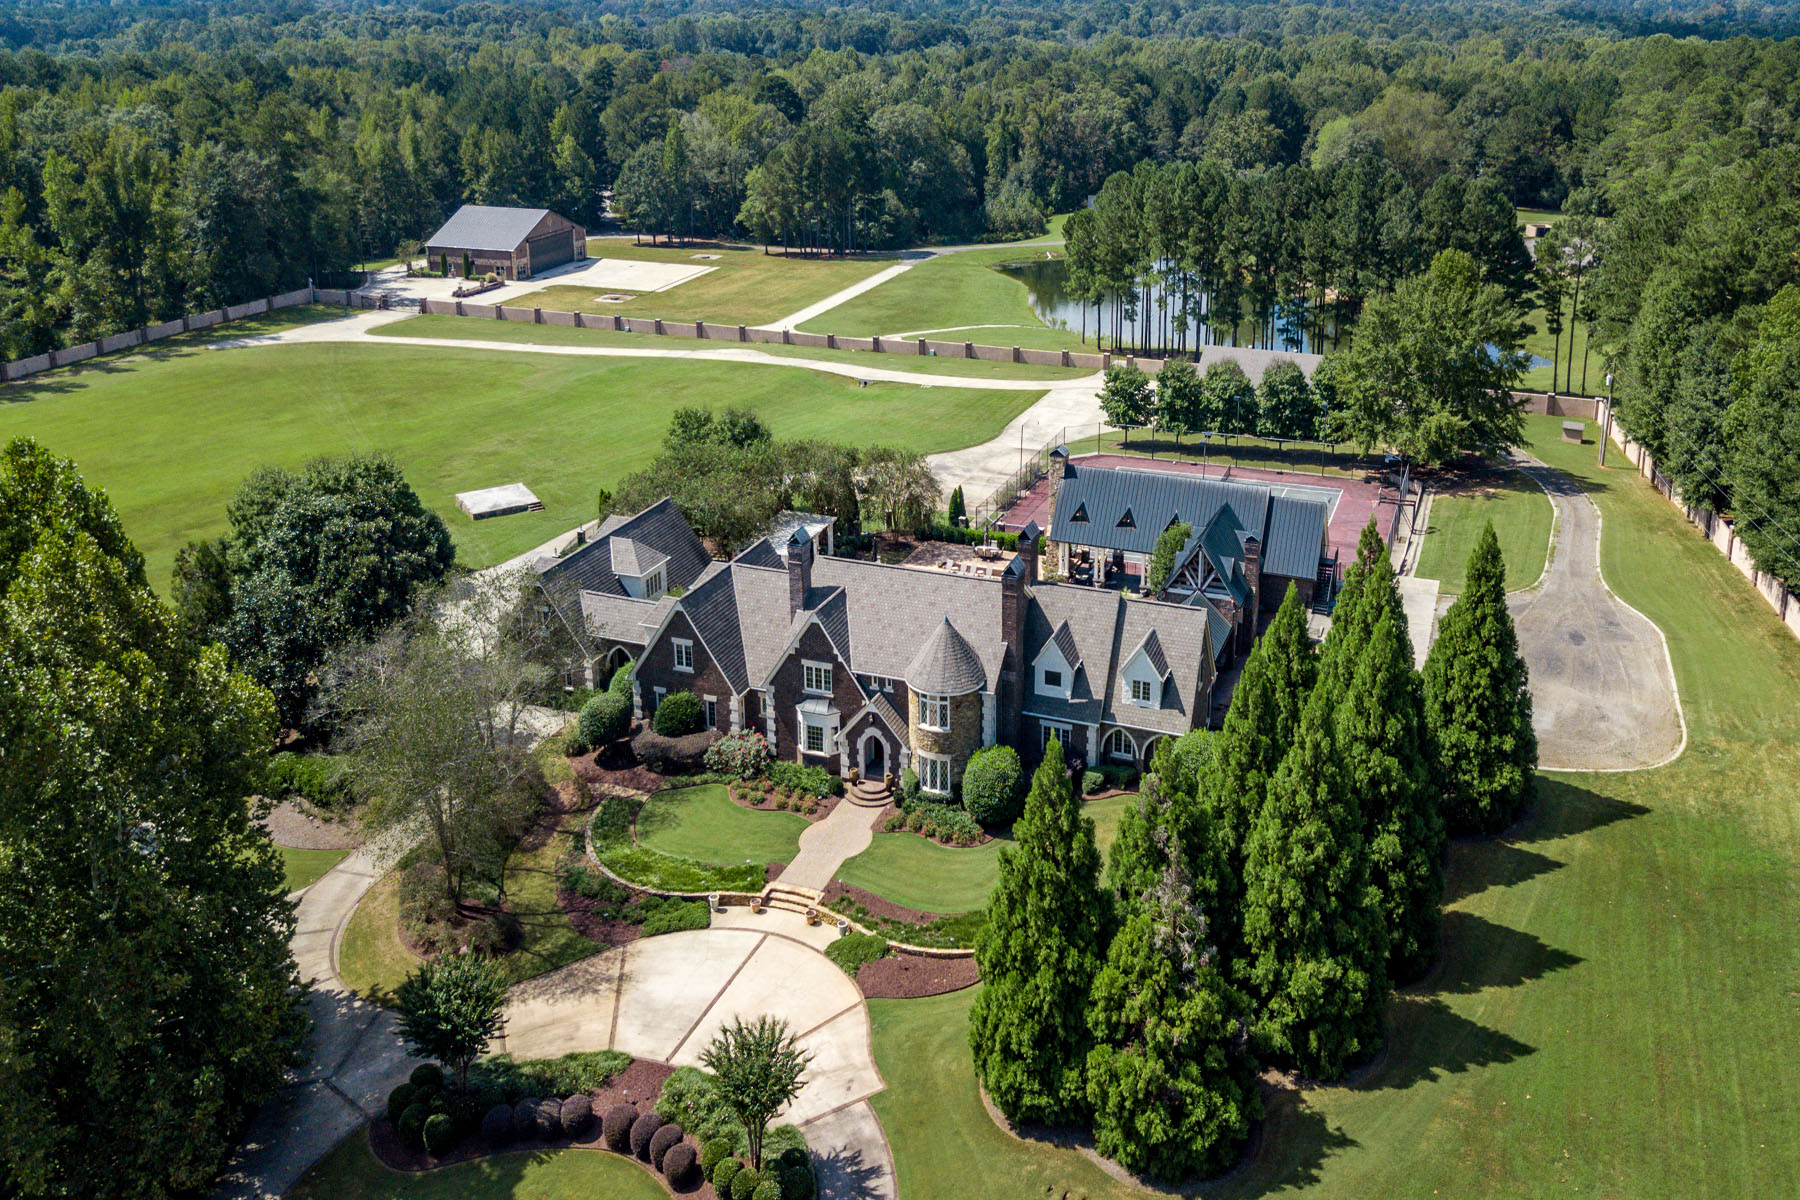 Single Family Home for Sale at Private Georgia Luxury Fly-In Estate 171 County Line Road Fayetteville, Georgia 30215 United States